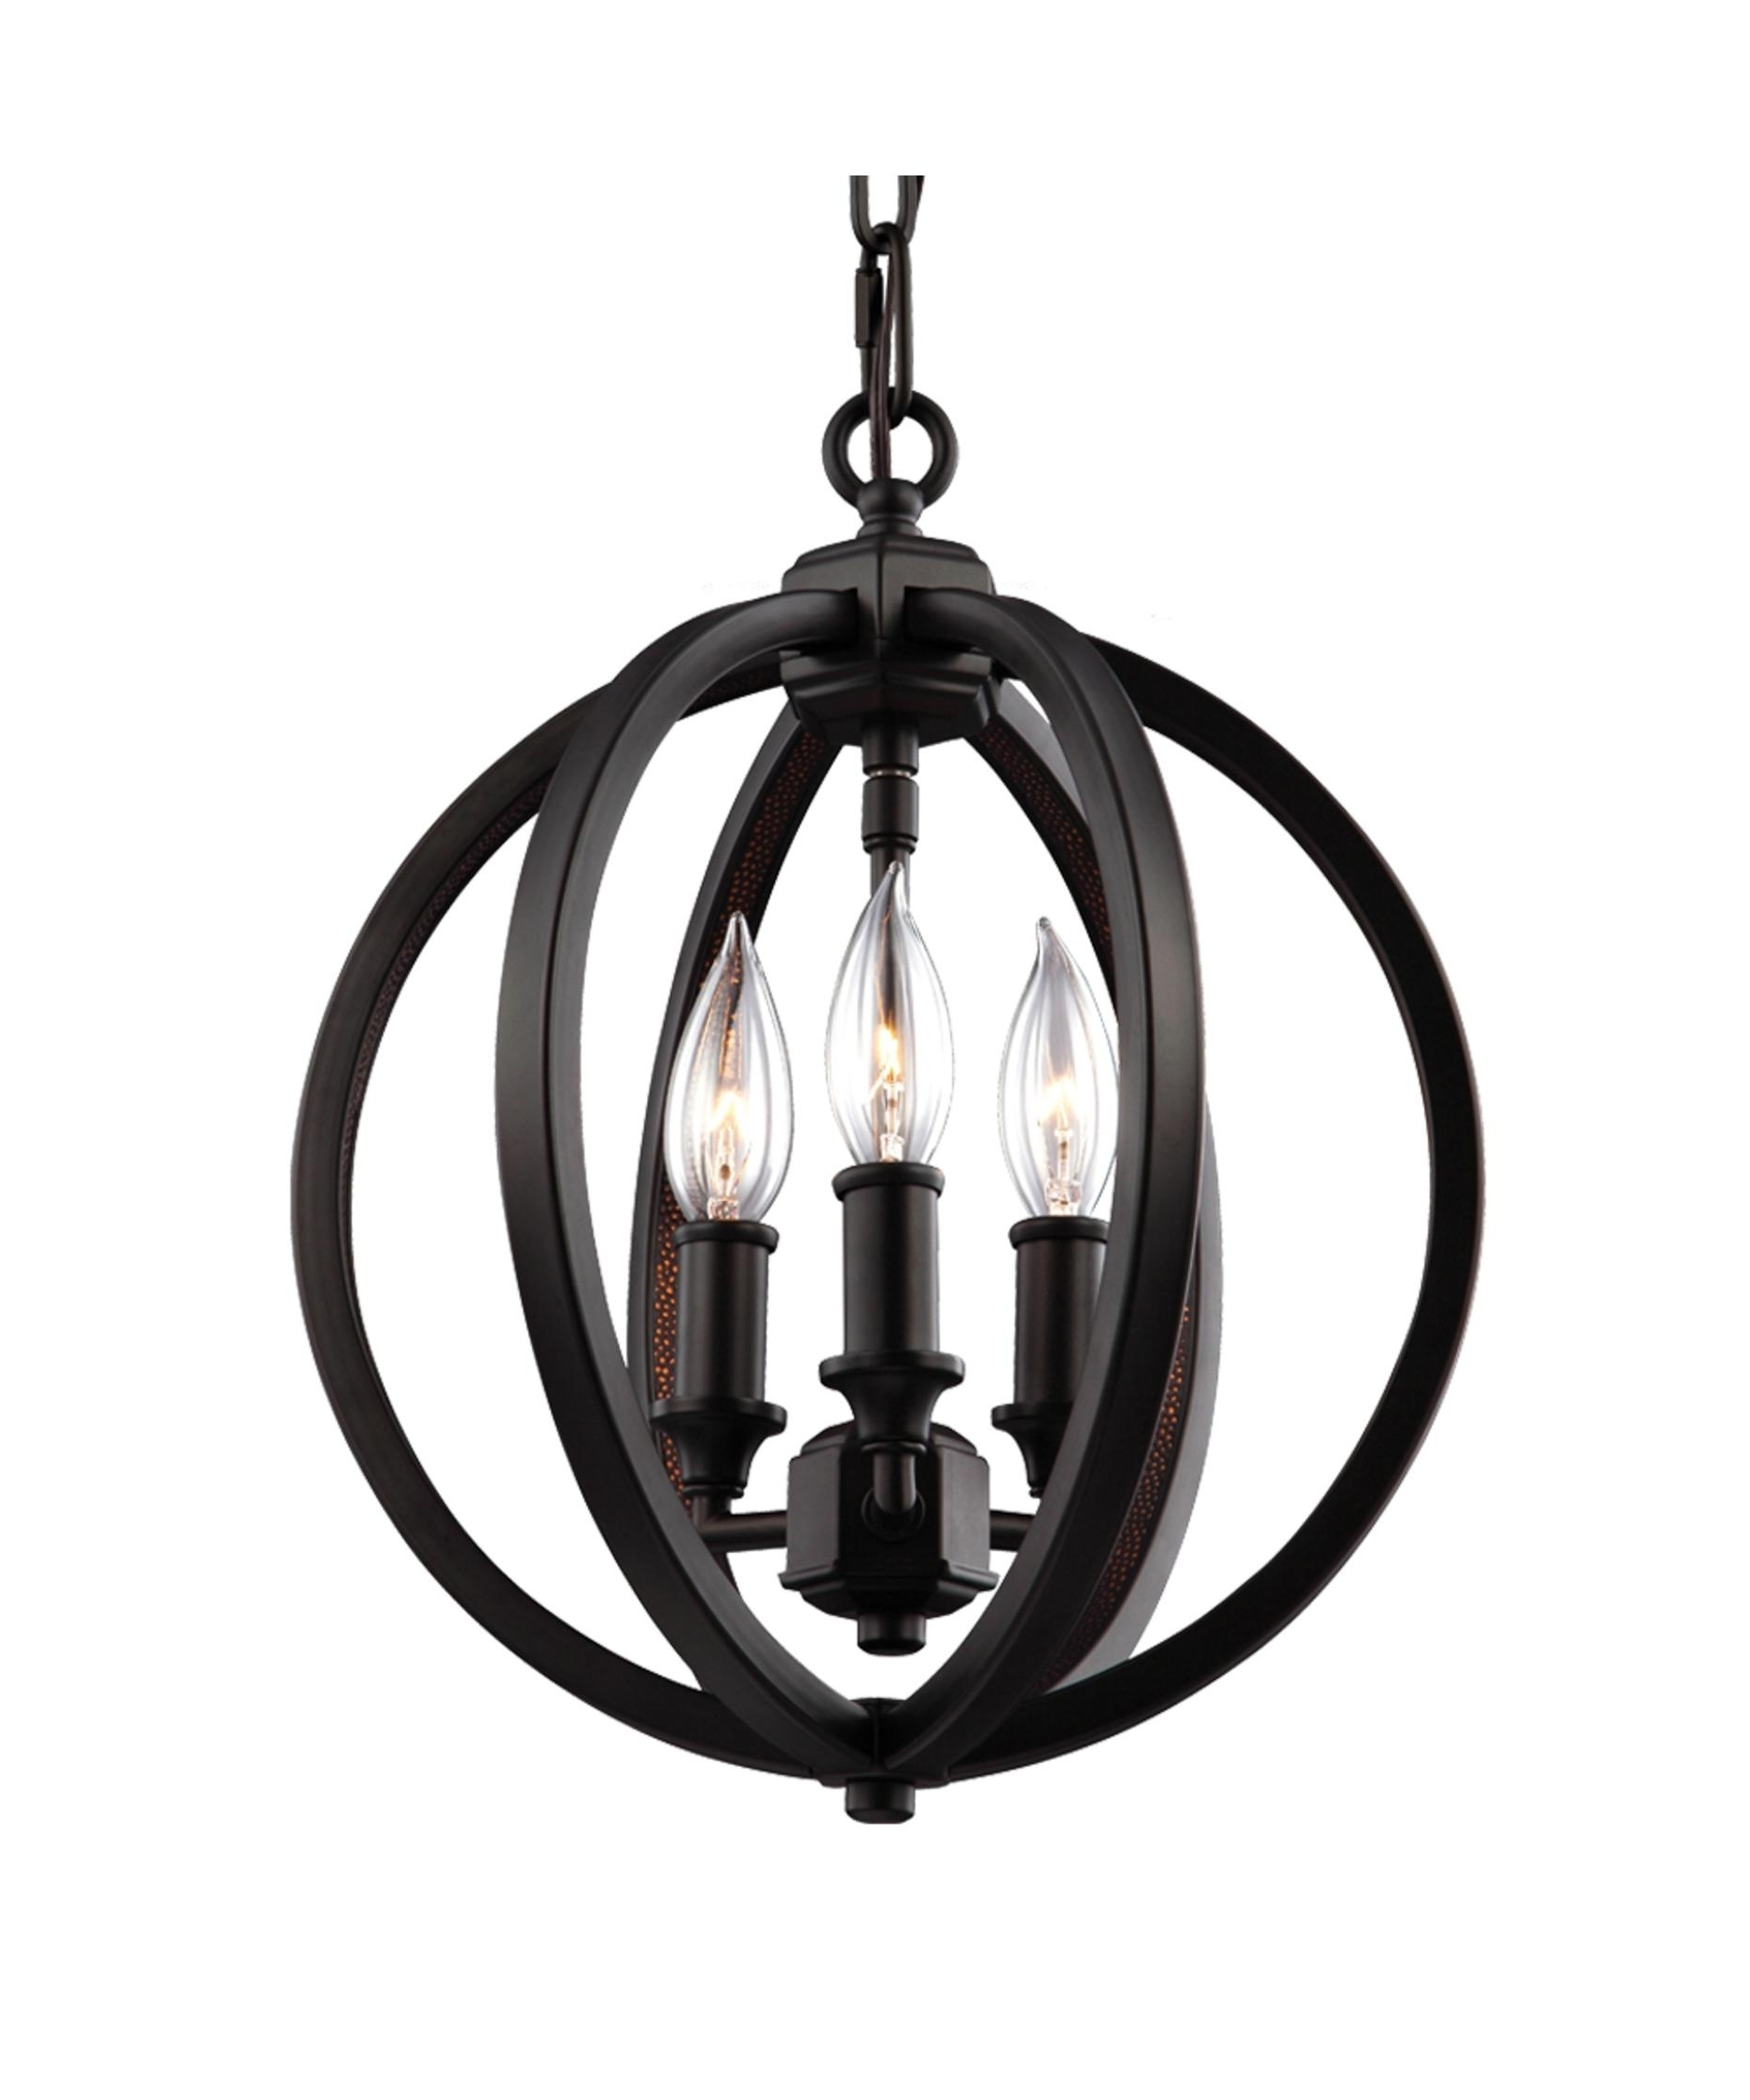 Murray Feiss F3059 3 Corinne 11 Inch Wide 3 Light Mini Chandelier Intended For Most Current Feiss Chandeliers (View 16 of 20)